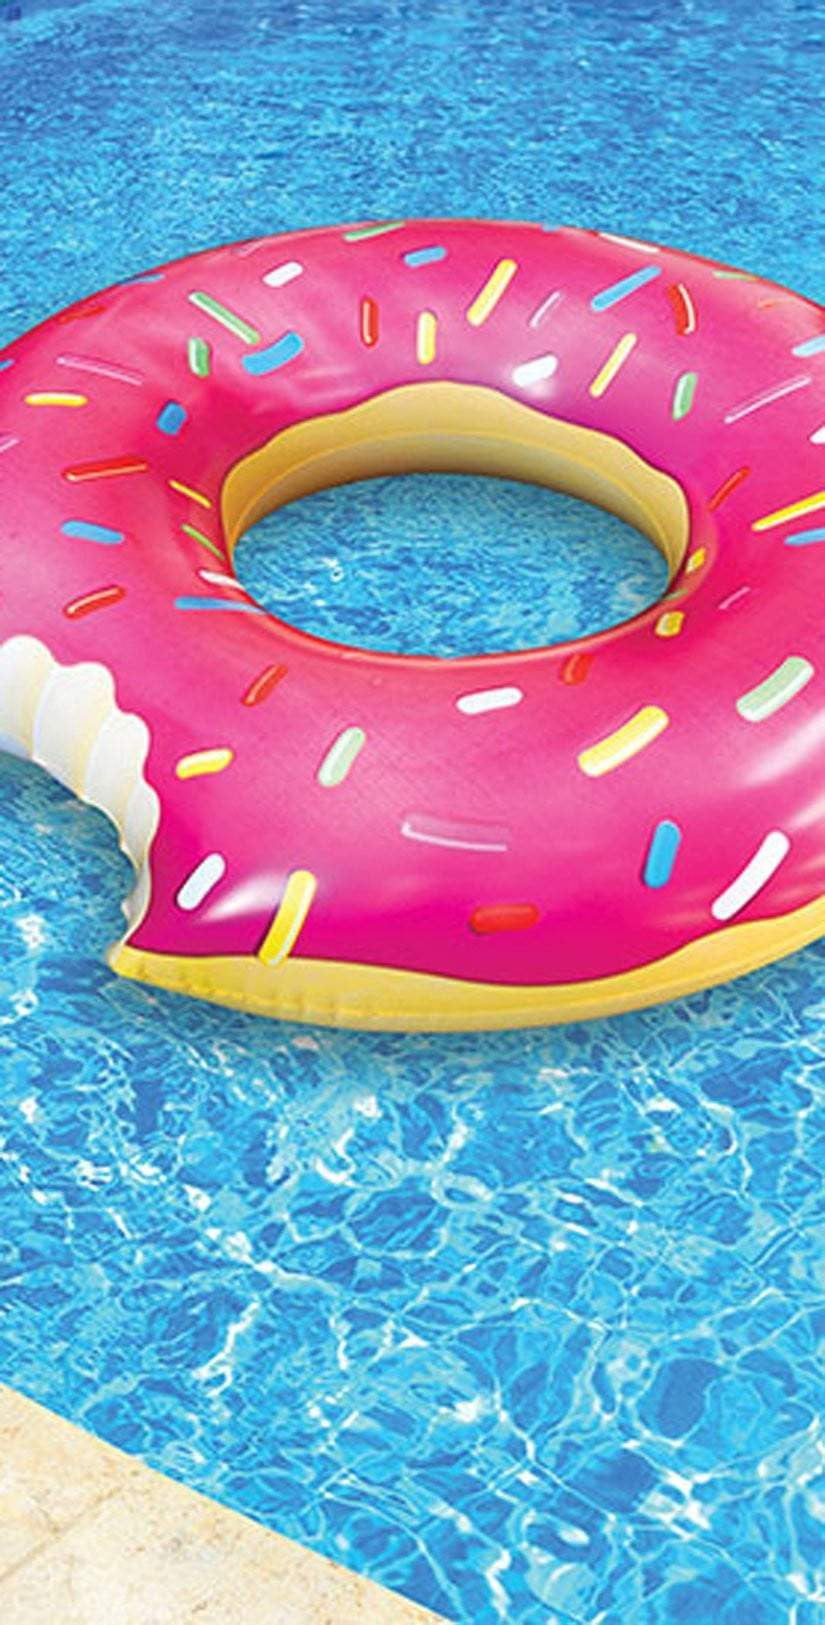 Big Mouth Giant Pink Frosted Donut Float BM1516: